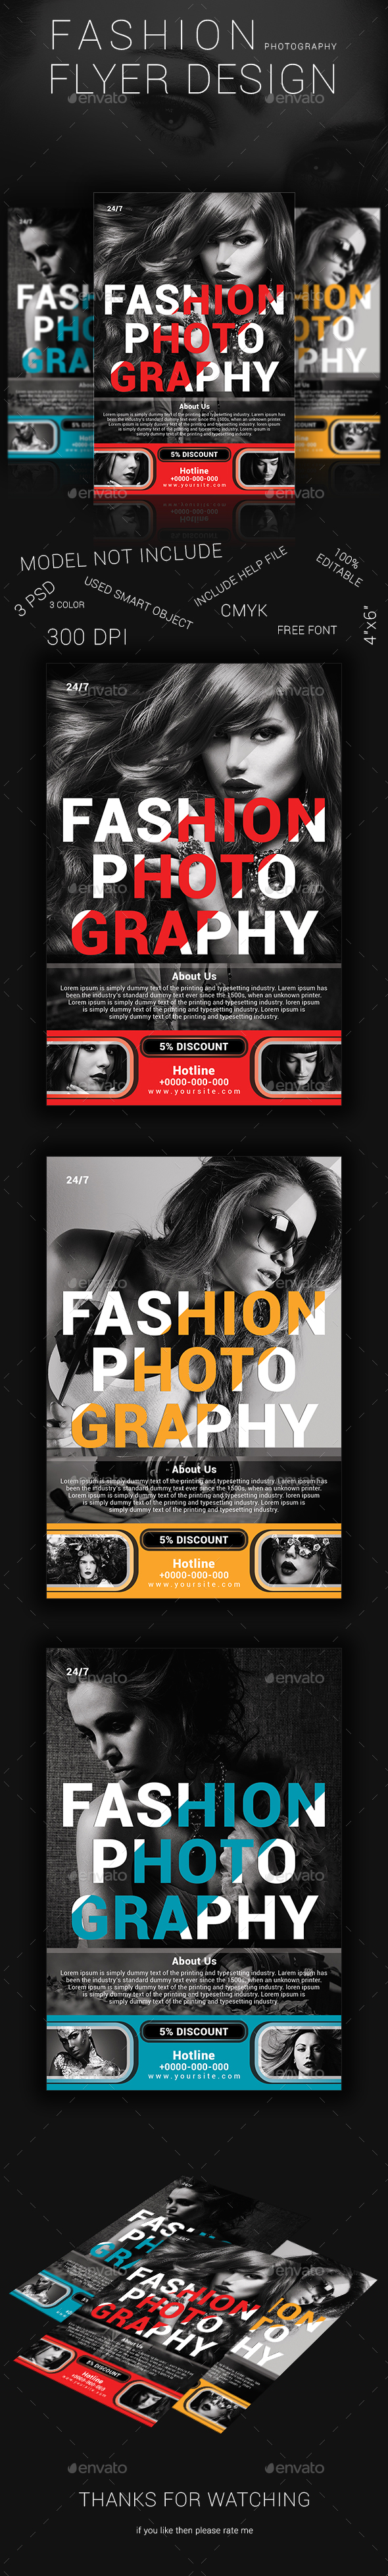 Fashion Photography Flyer Design - Flyers Print Templates